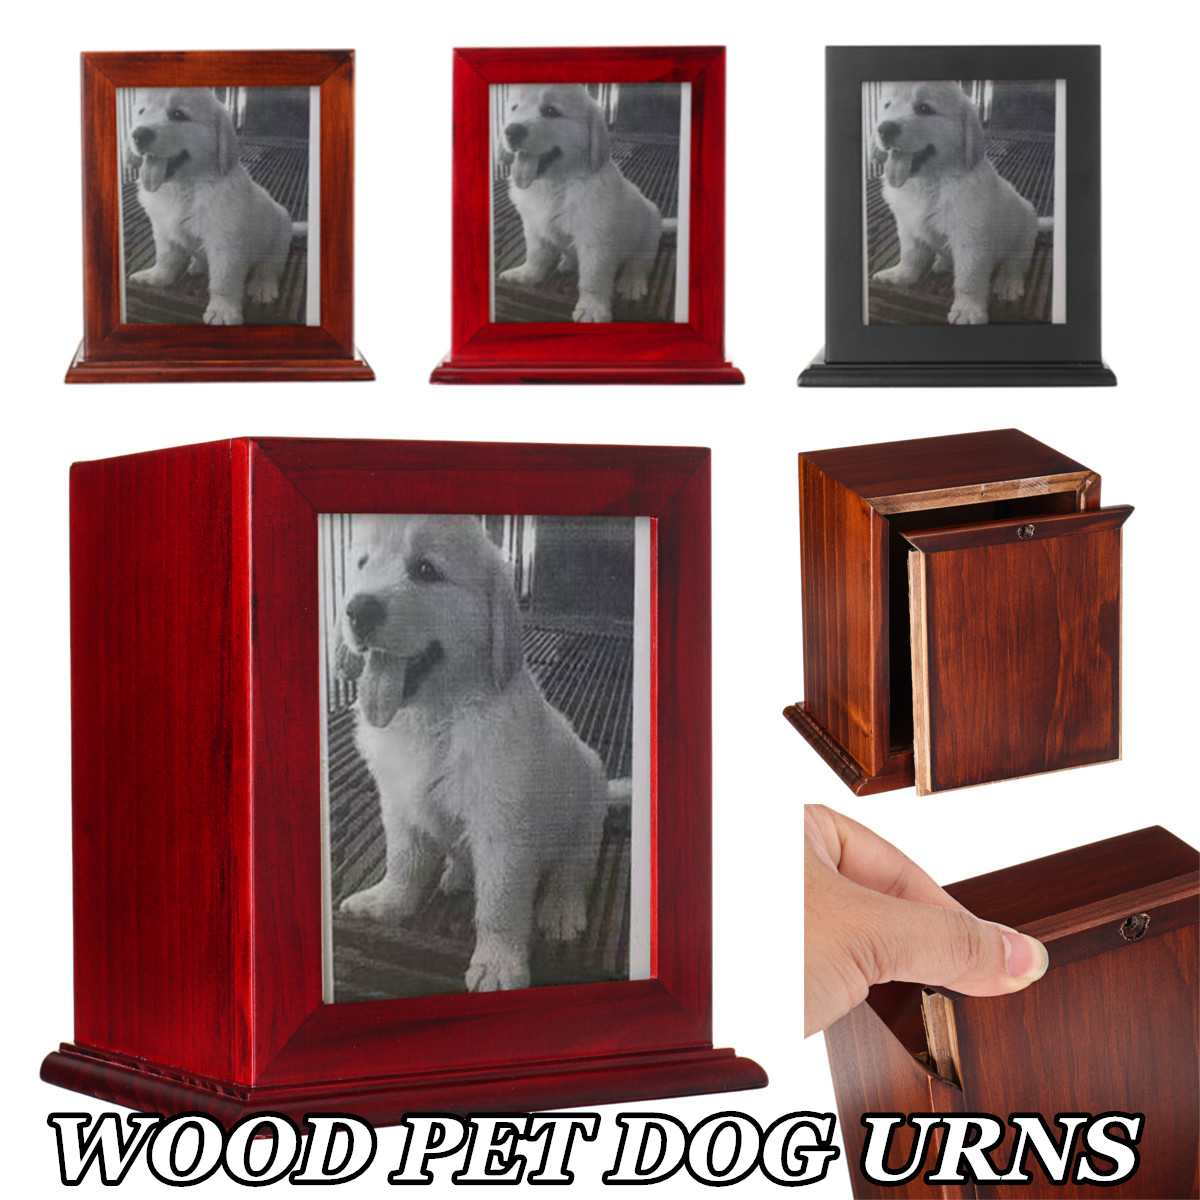 Simple Photo Frame Wood Pet Cremation Urn for ashes Perfect Resting Place Dog Cat Cremation Urn Peaceful Memorial Photo